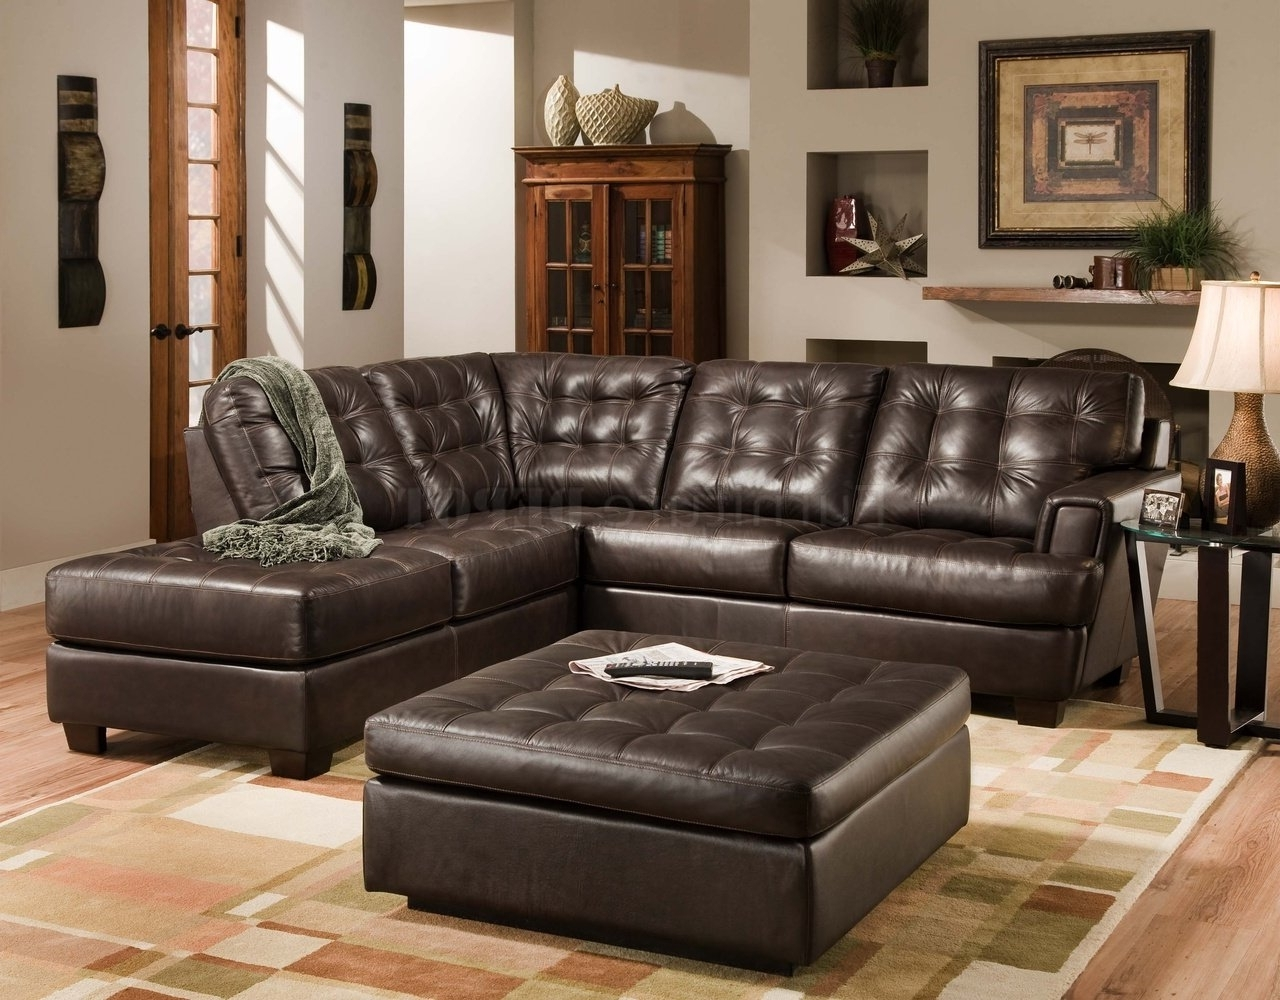 Newest Double Chaise Loveseat Leather Loveseat With Chaise Large Within Leather Sectional Sofas With Chaise (View 12 of 15)